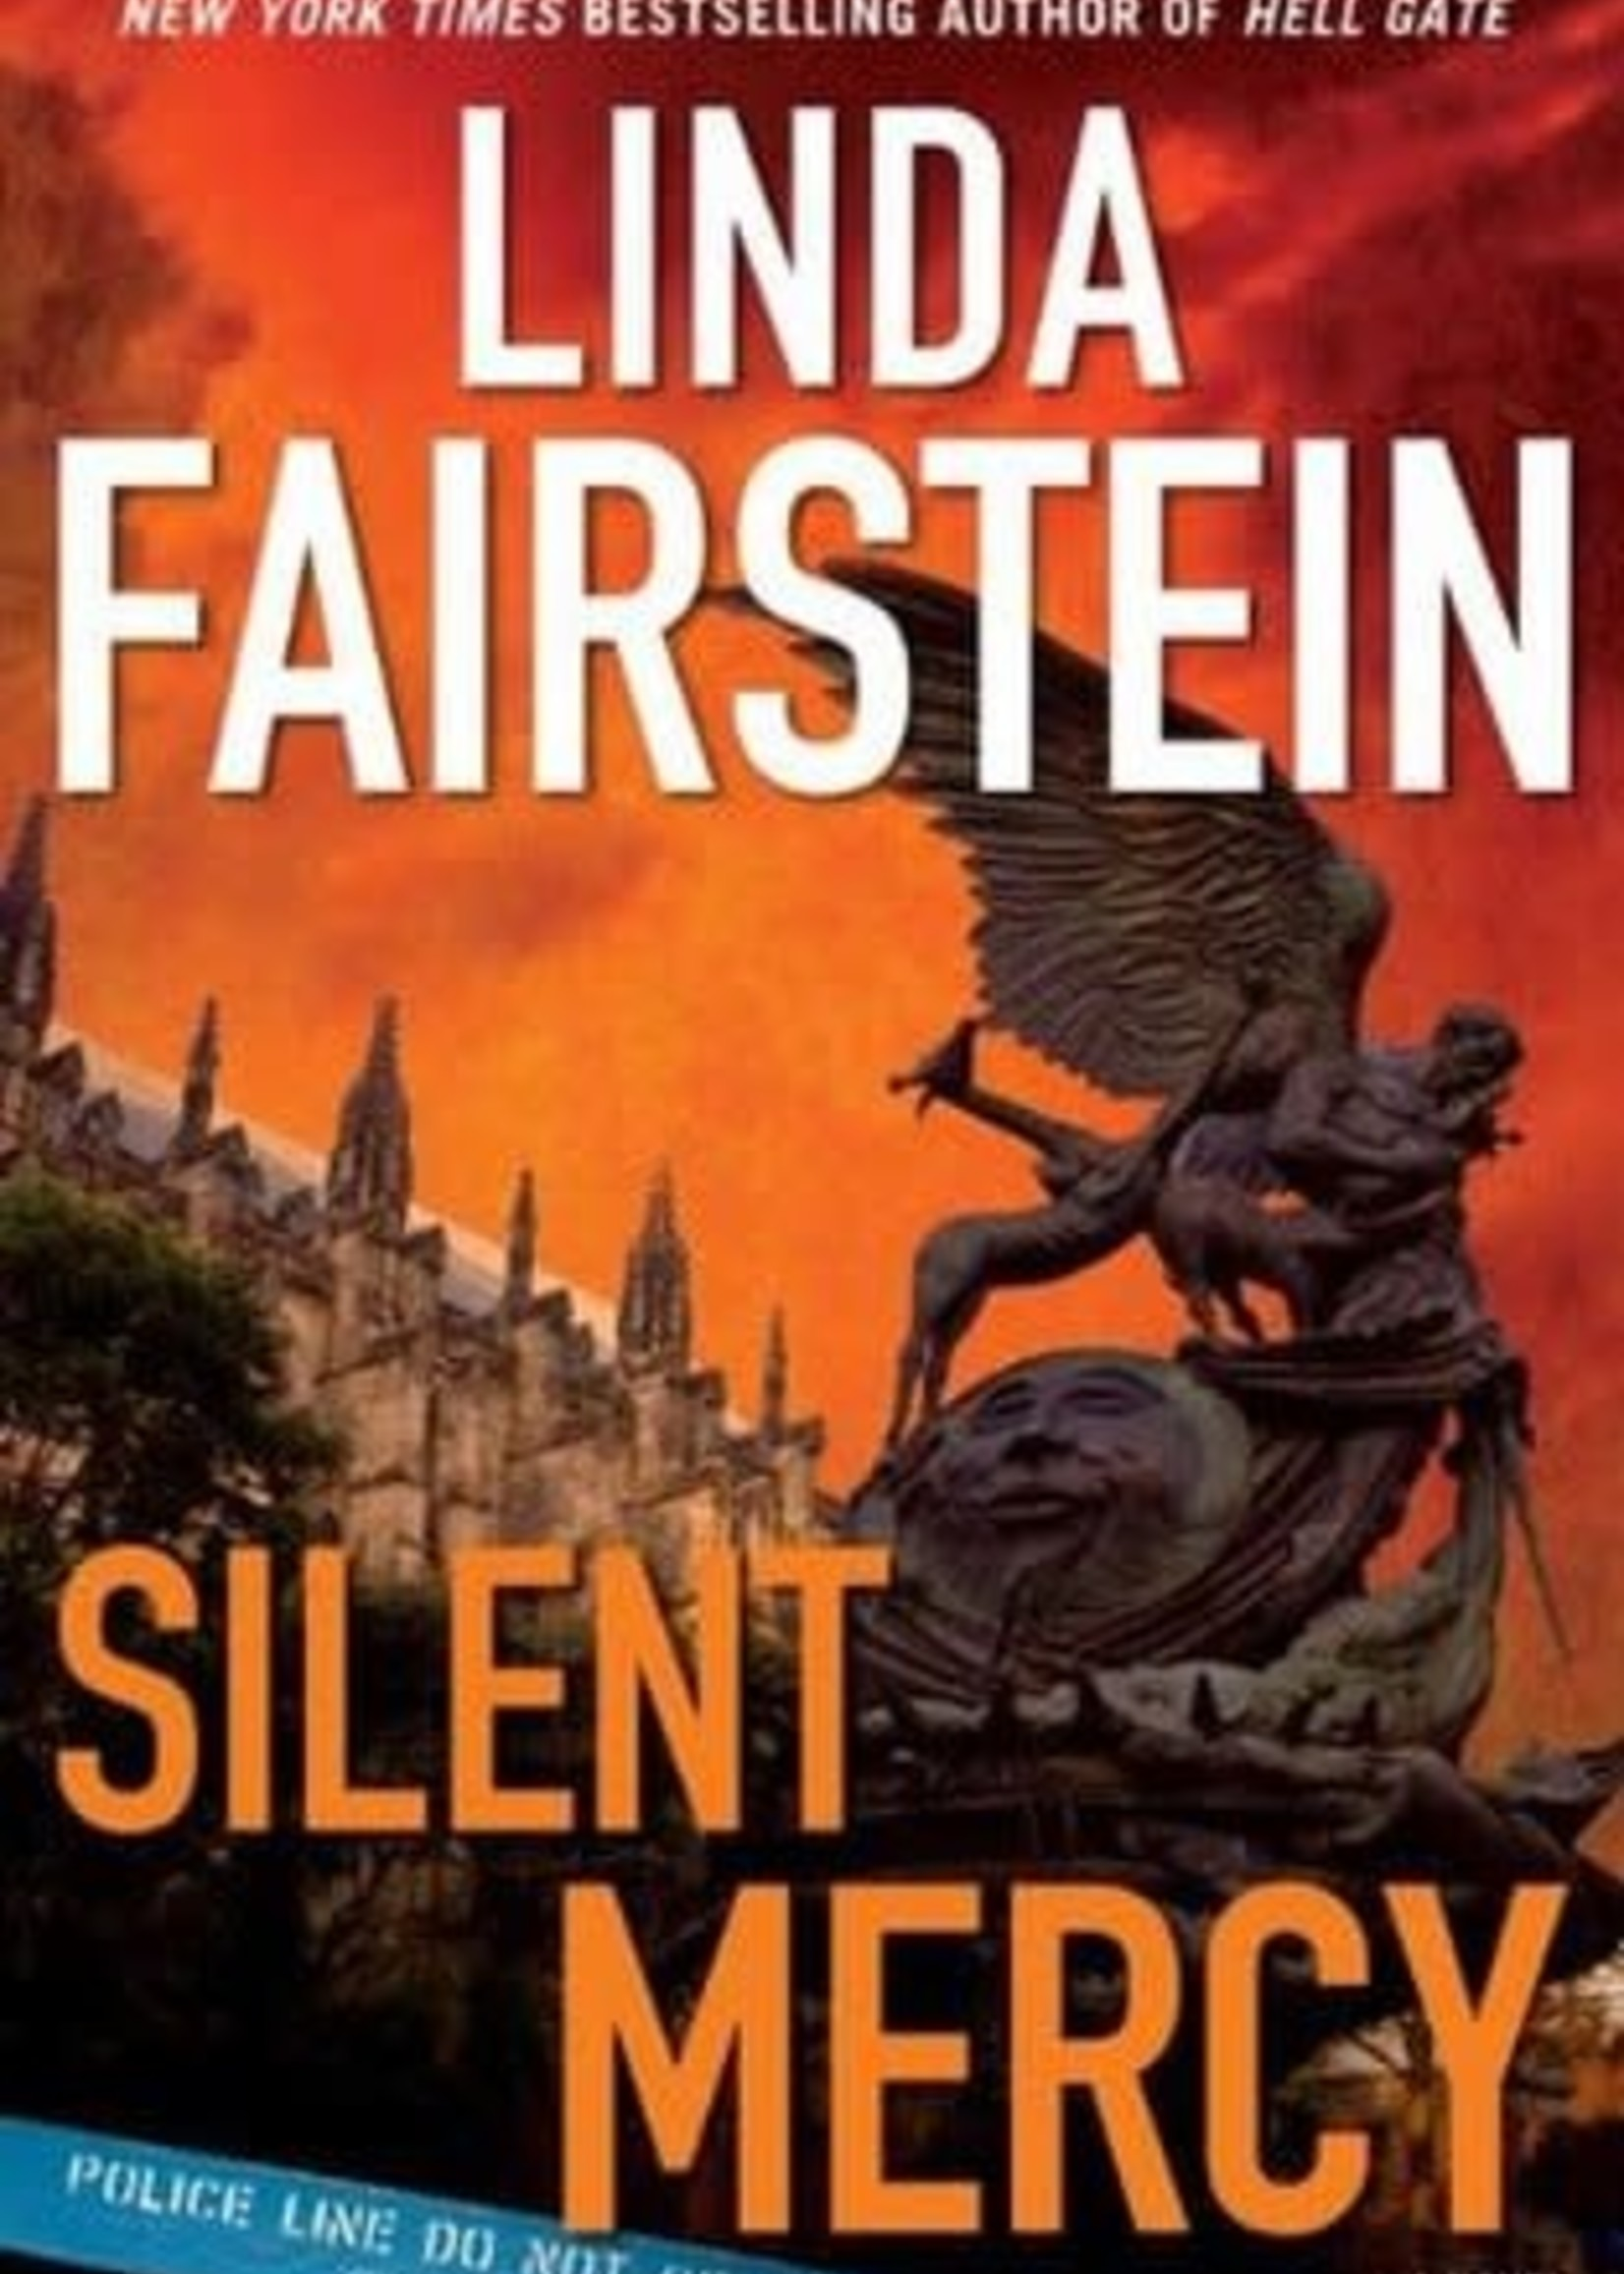 USED - Silent Mercy by Linda Fairstein